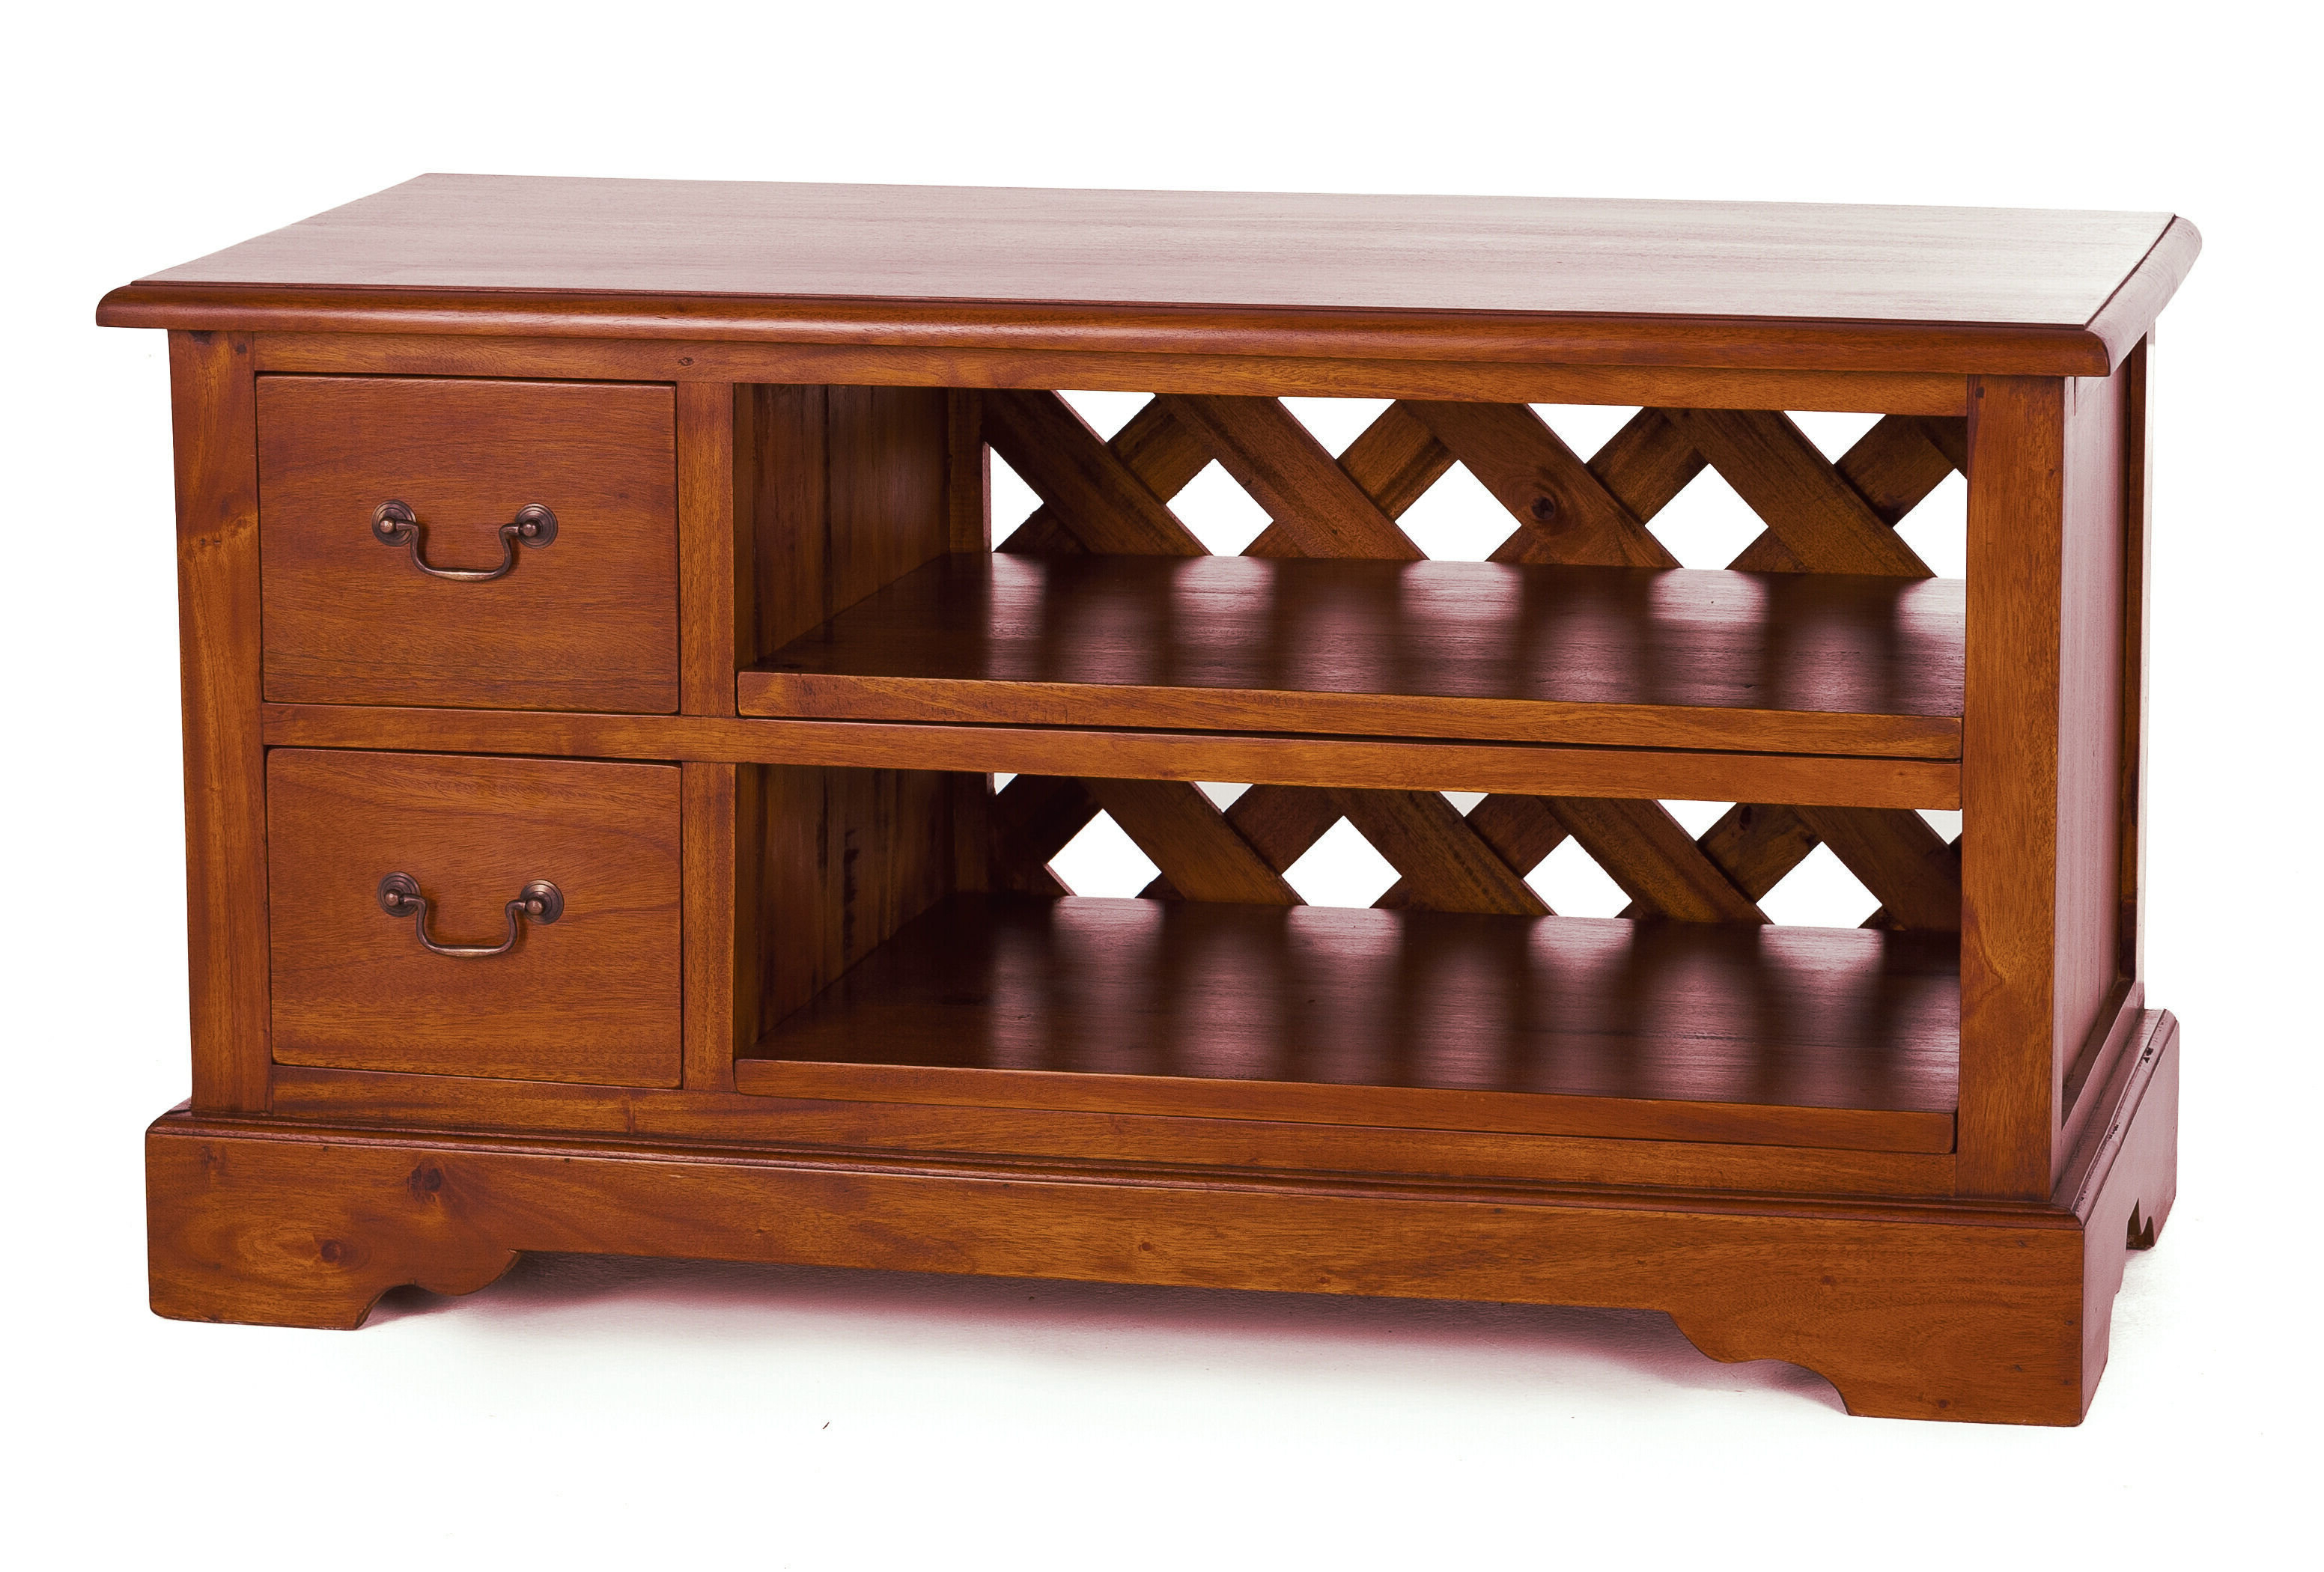 Mahogany Tv Cabinets Within Recent Mahogany Tv Stands & Entertainment Units You'll Love (View 18 of 20)